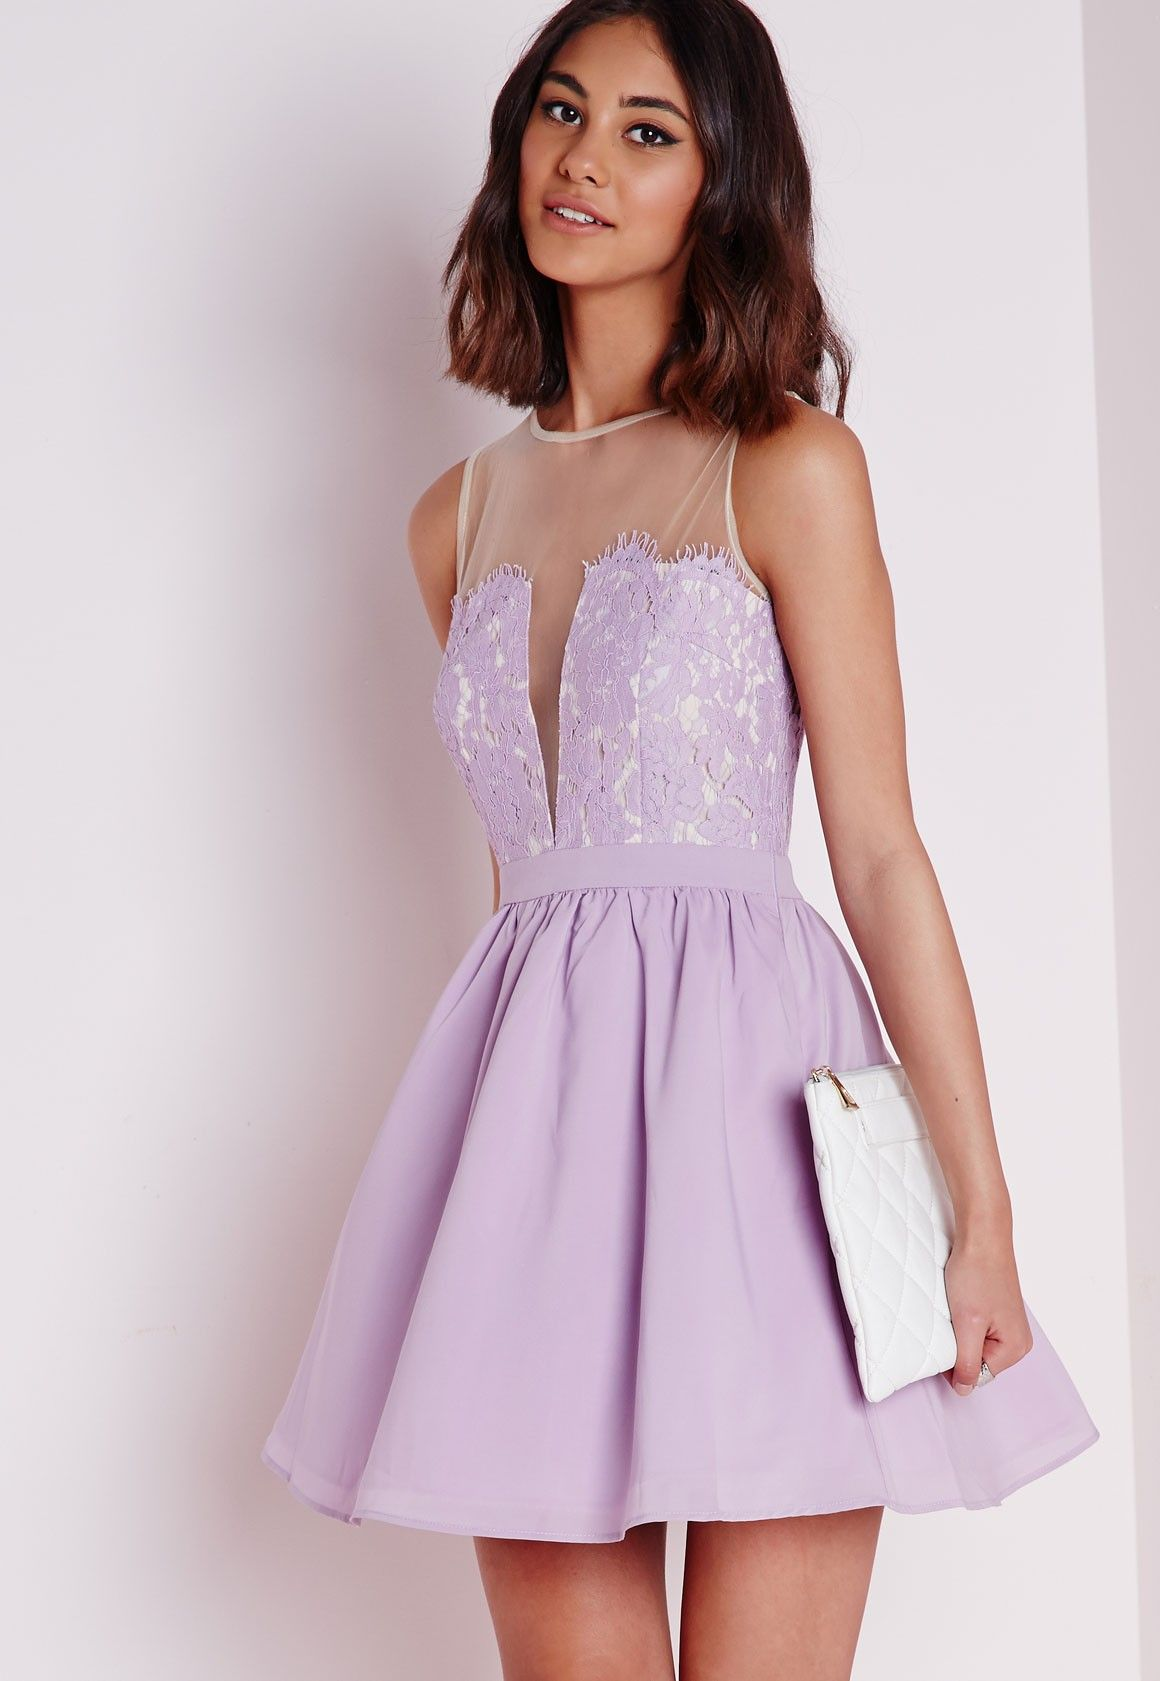 Missguided - Lace Puffball Skater Dress Lilac  4f244c57d